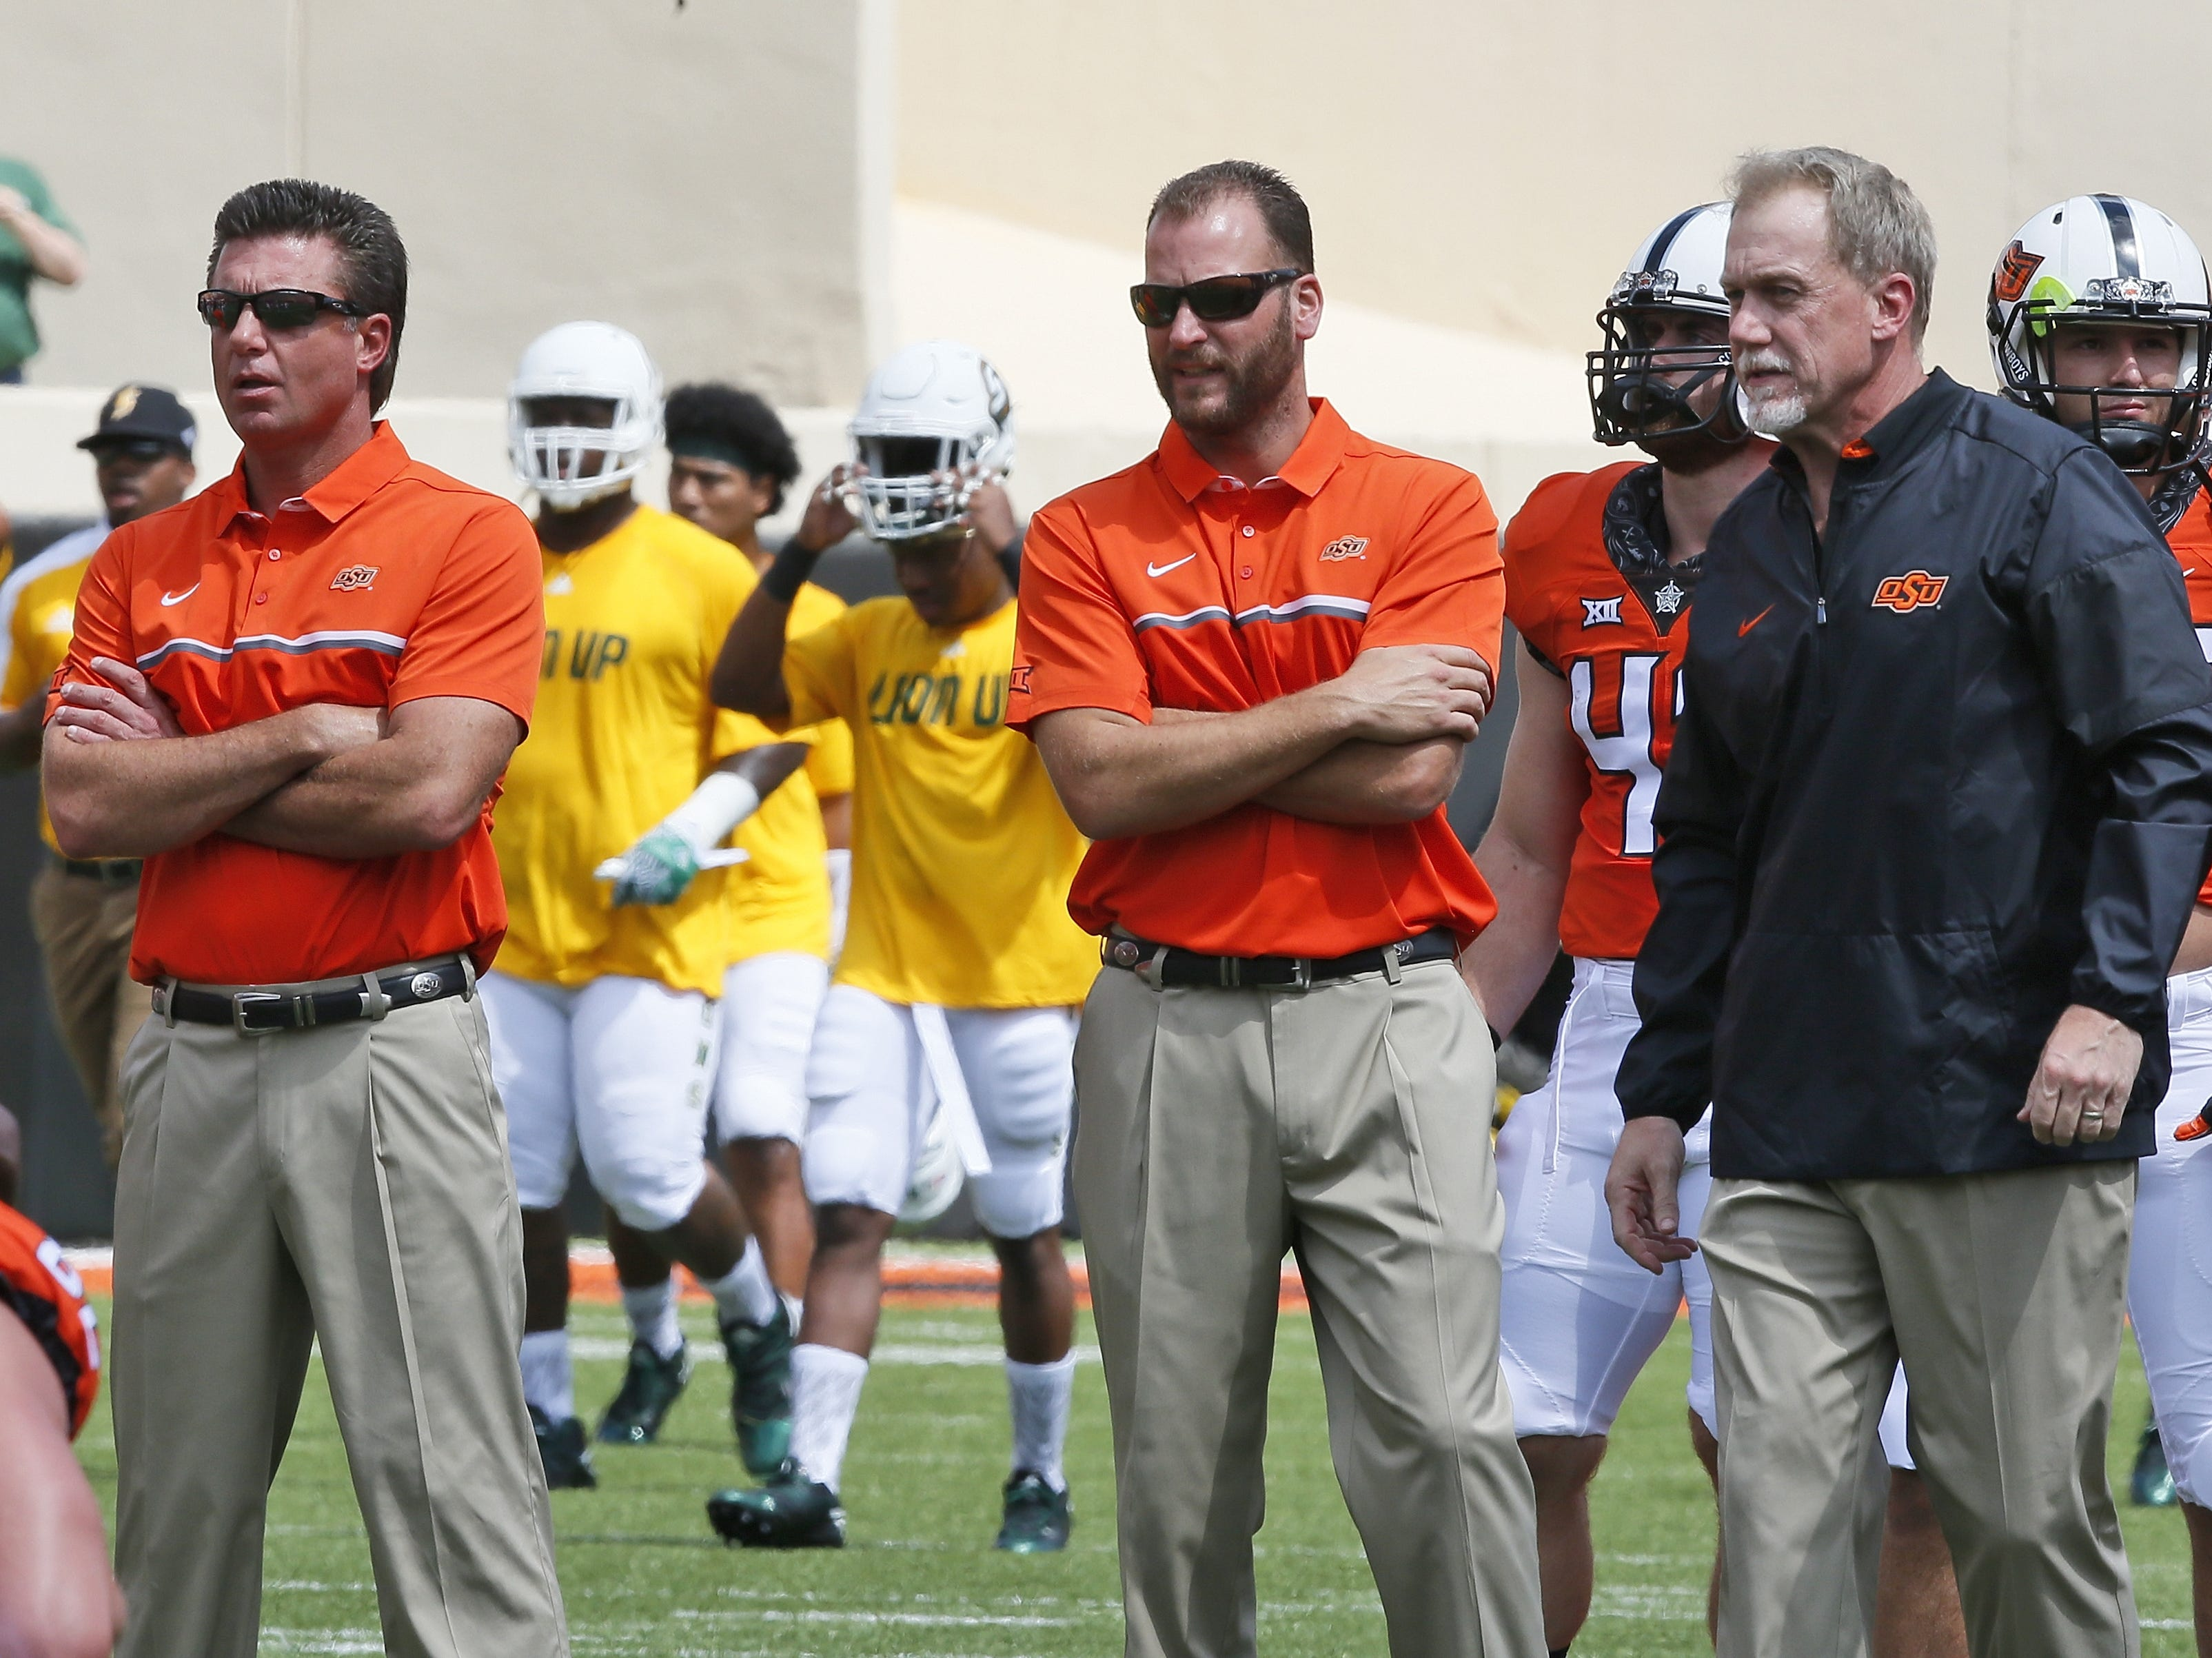 In this Saturday, Sept. 3, 2016 photo, Oklahoma State head coach Mike Gundy, left, Mike Yurcich, center, Oklahoma State offensive coordinator, and  Glenn Spencer, right, defensive coordinator, watch warm-ups before an NCAA college football game against Southeastern Louisiana in Stillwater, Okla.